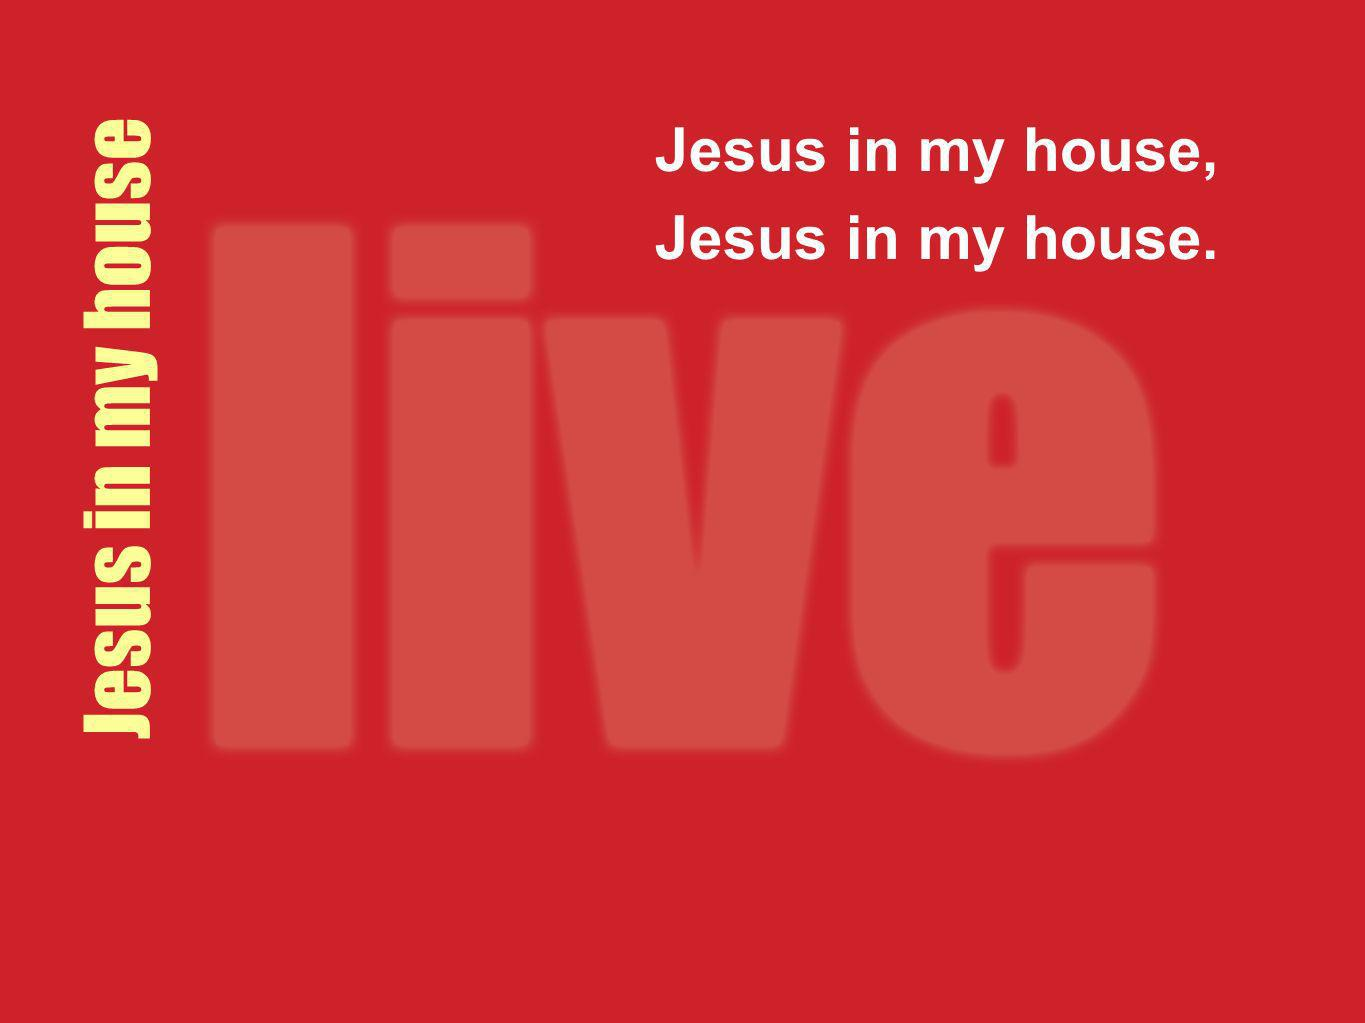 Jesus in my house Jesus in my house, Jesus in my house.